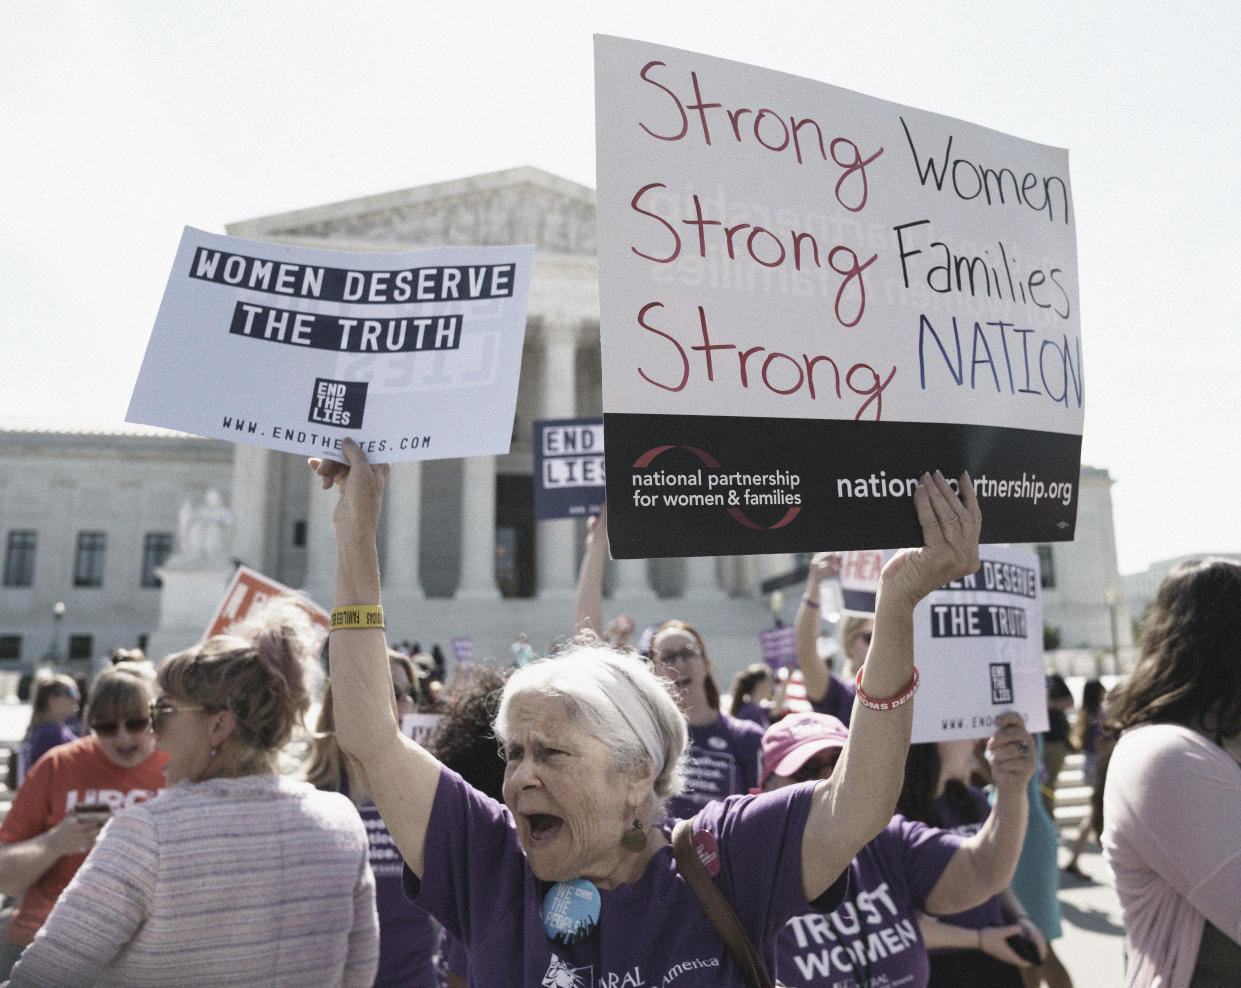 Protesters outside the Supreme Court building in Washington, June 26, 2018. (Photo: Carolyn Kaster/AP)